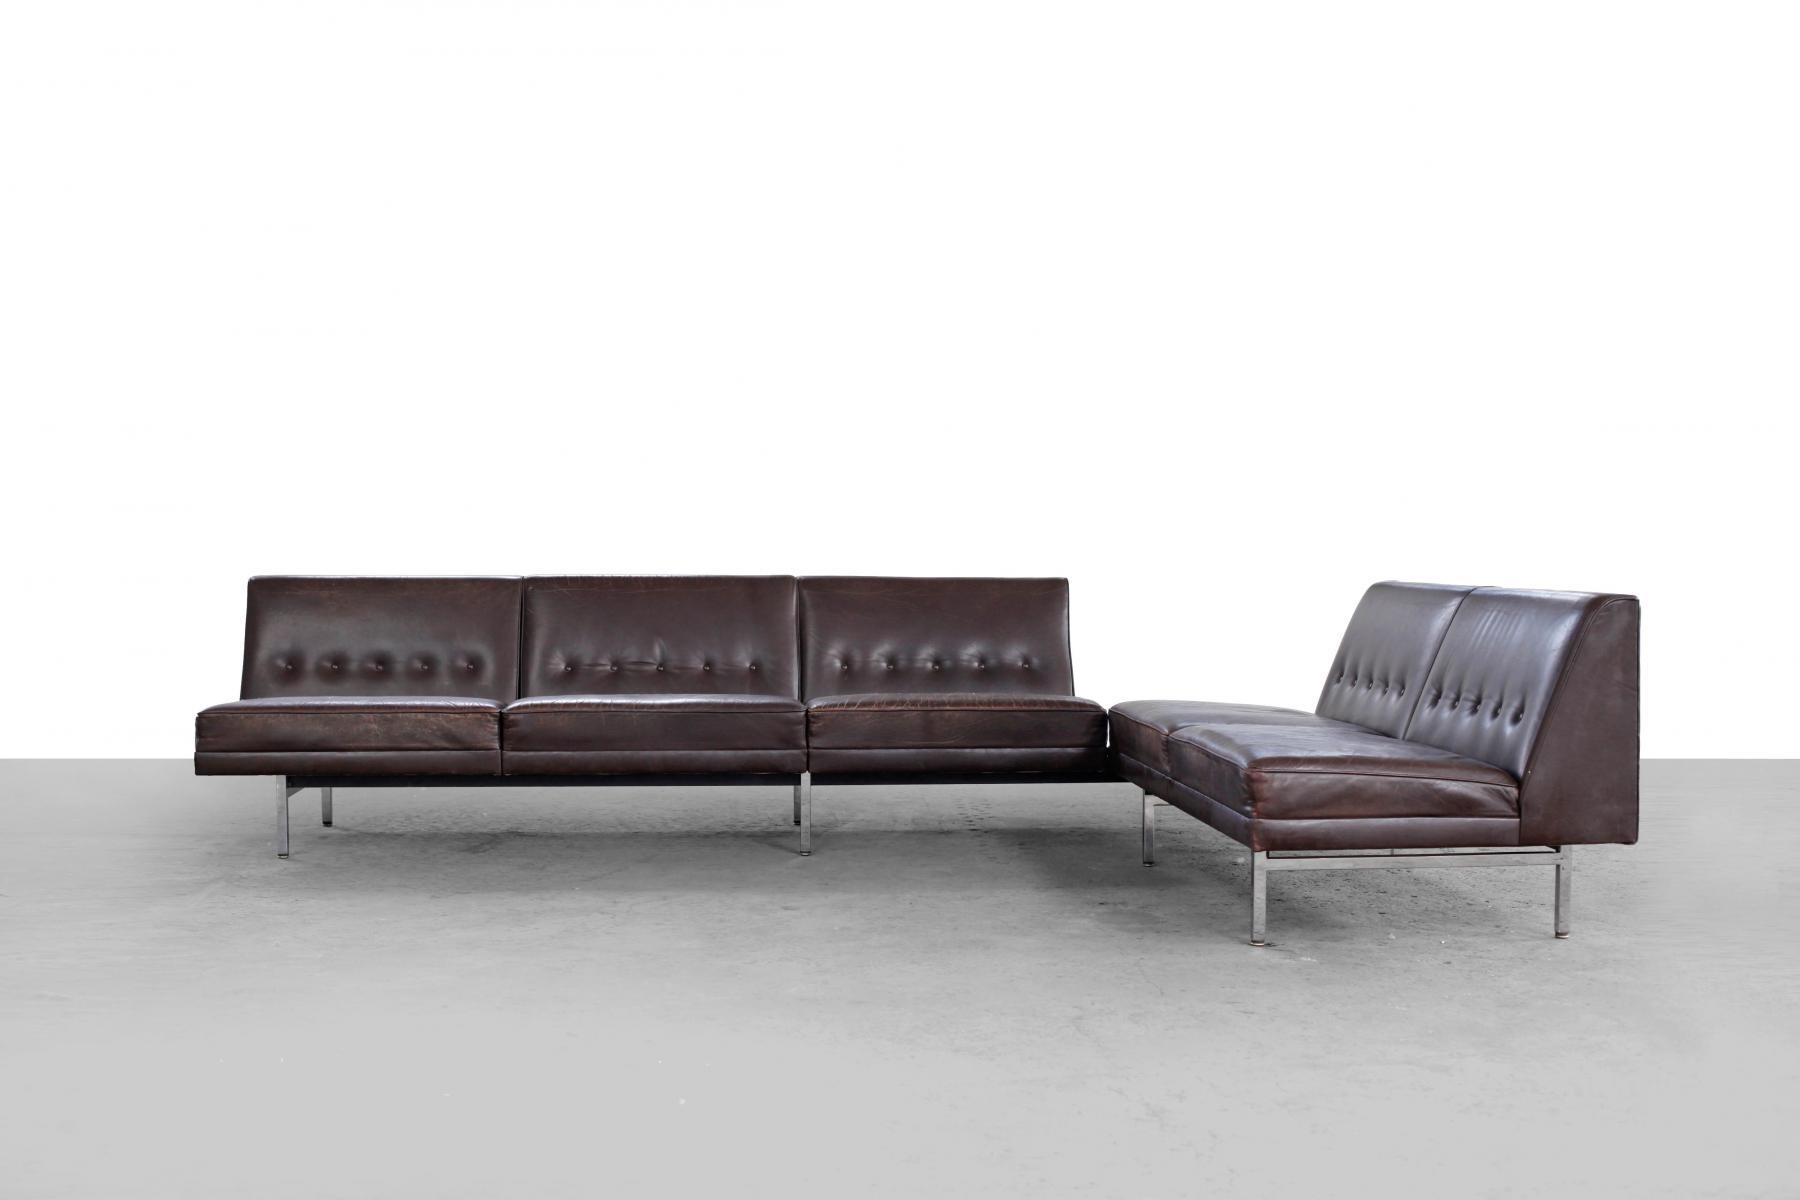 George Nelson Sofa With Inspiration Hd Images 22392 | Kengire with George Nelson Sofas